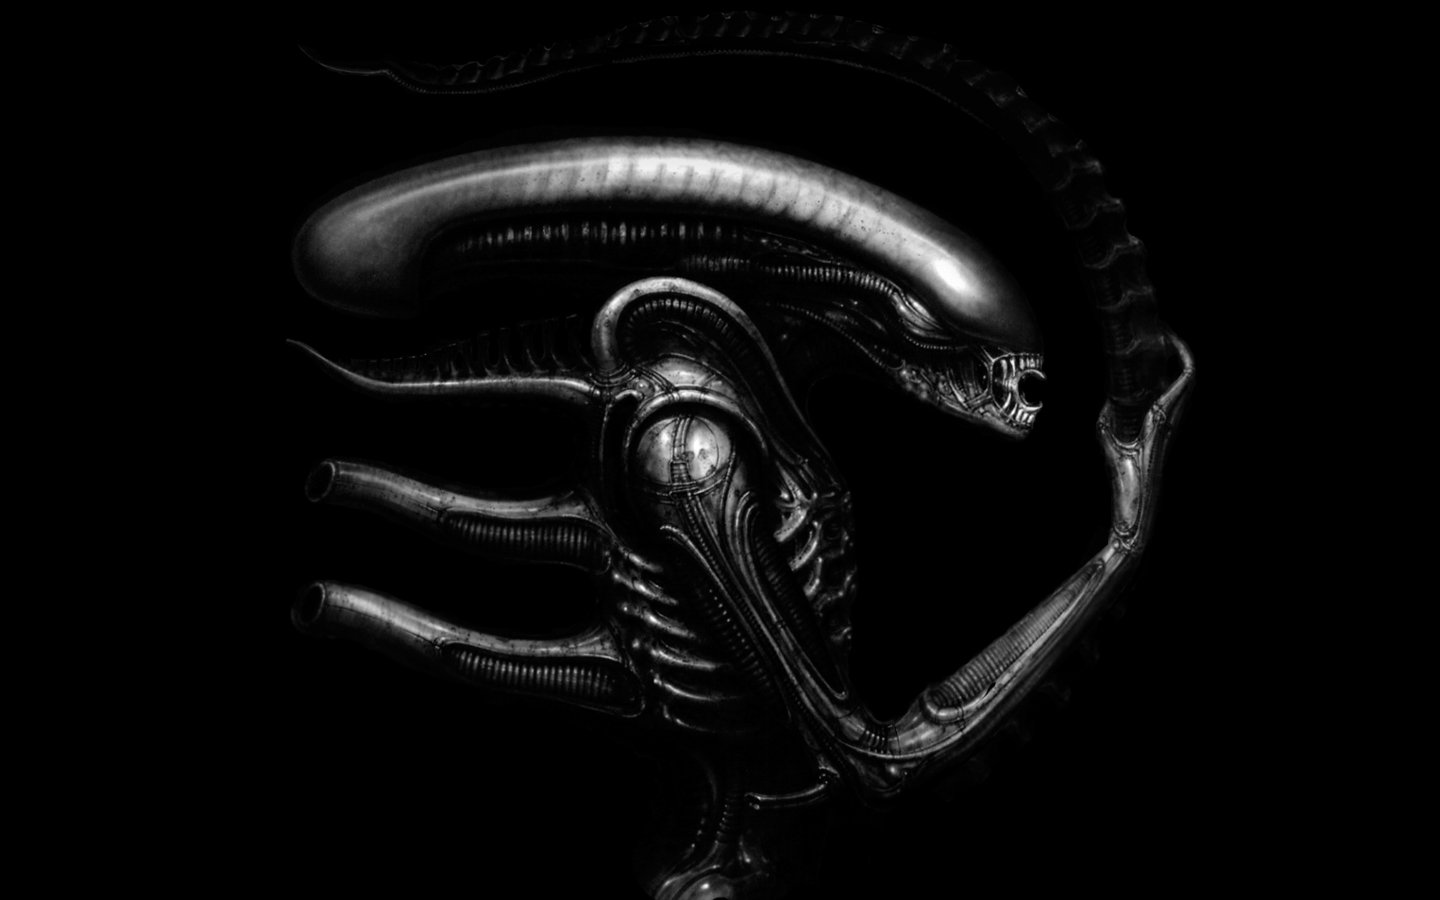 Top latest Alien hd wallpapers Download some of the best pictures for aliens that are available ...